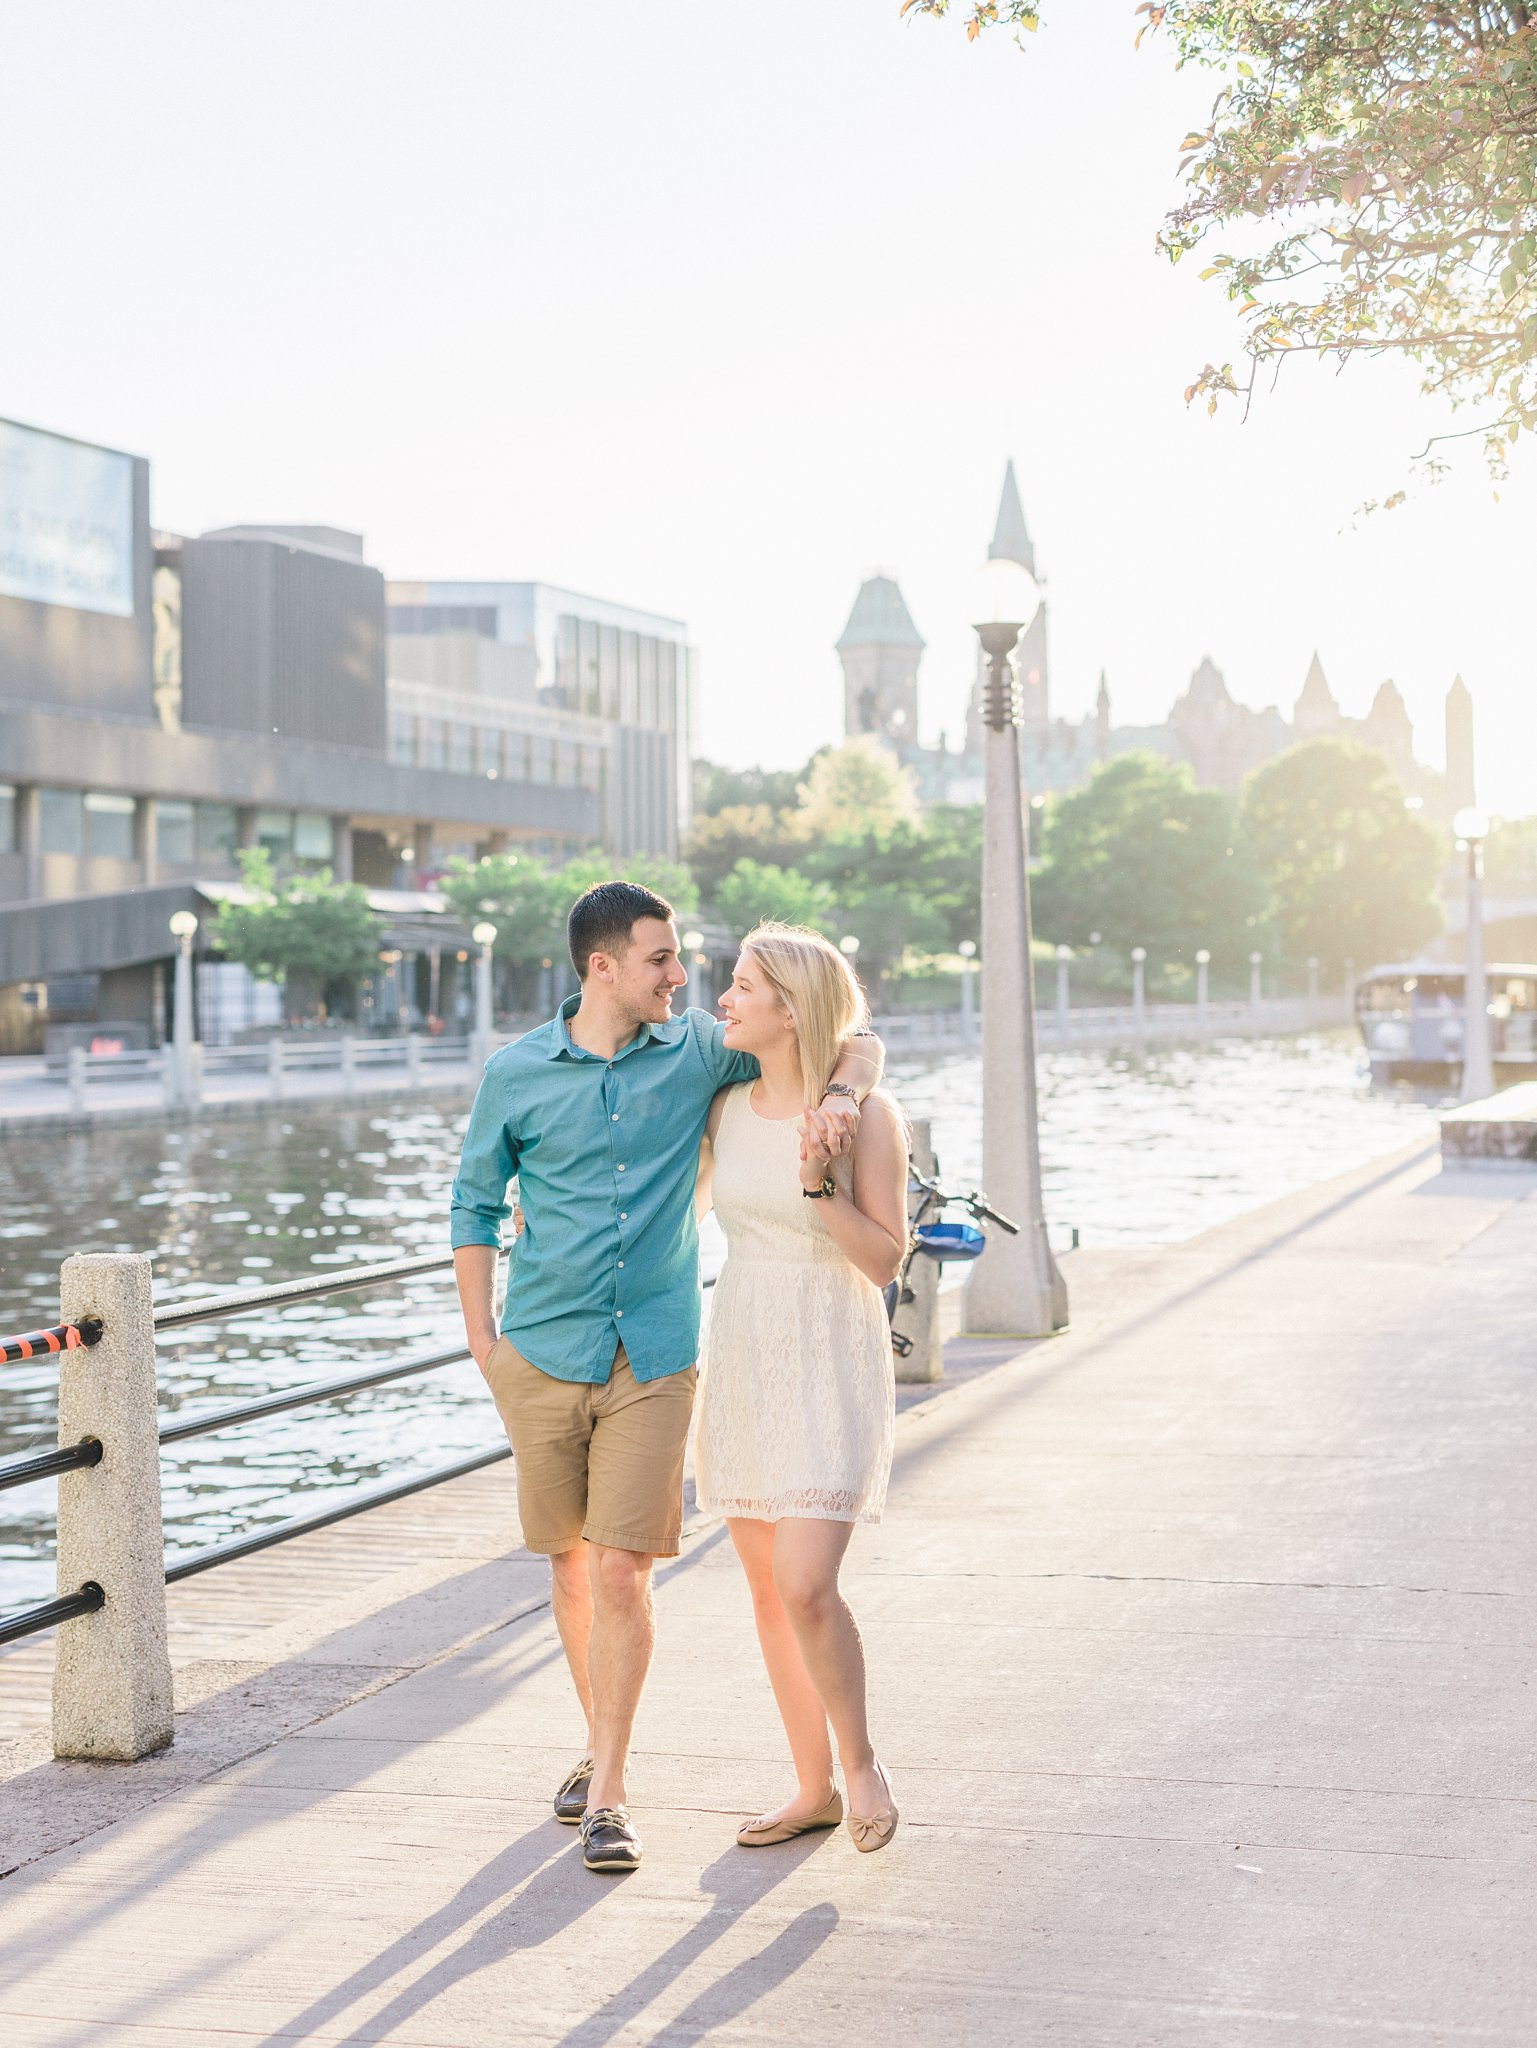 Walking canal path Summer Ottawa University engagement photos